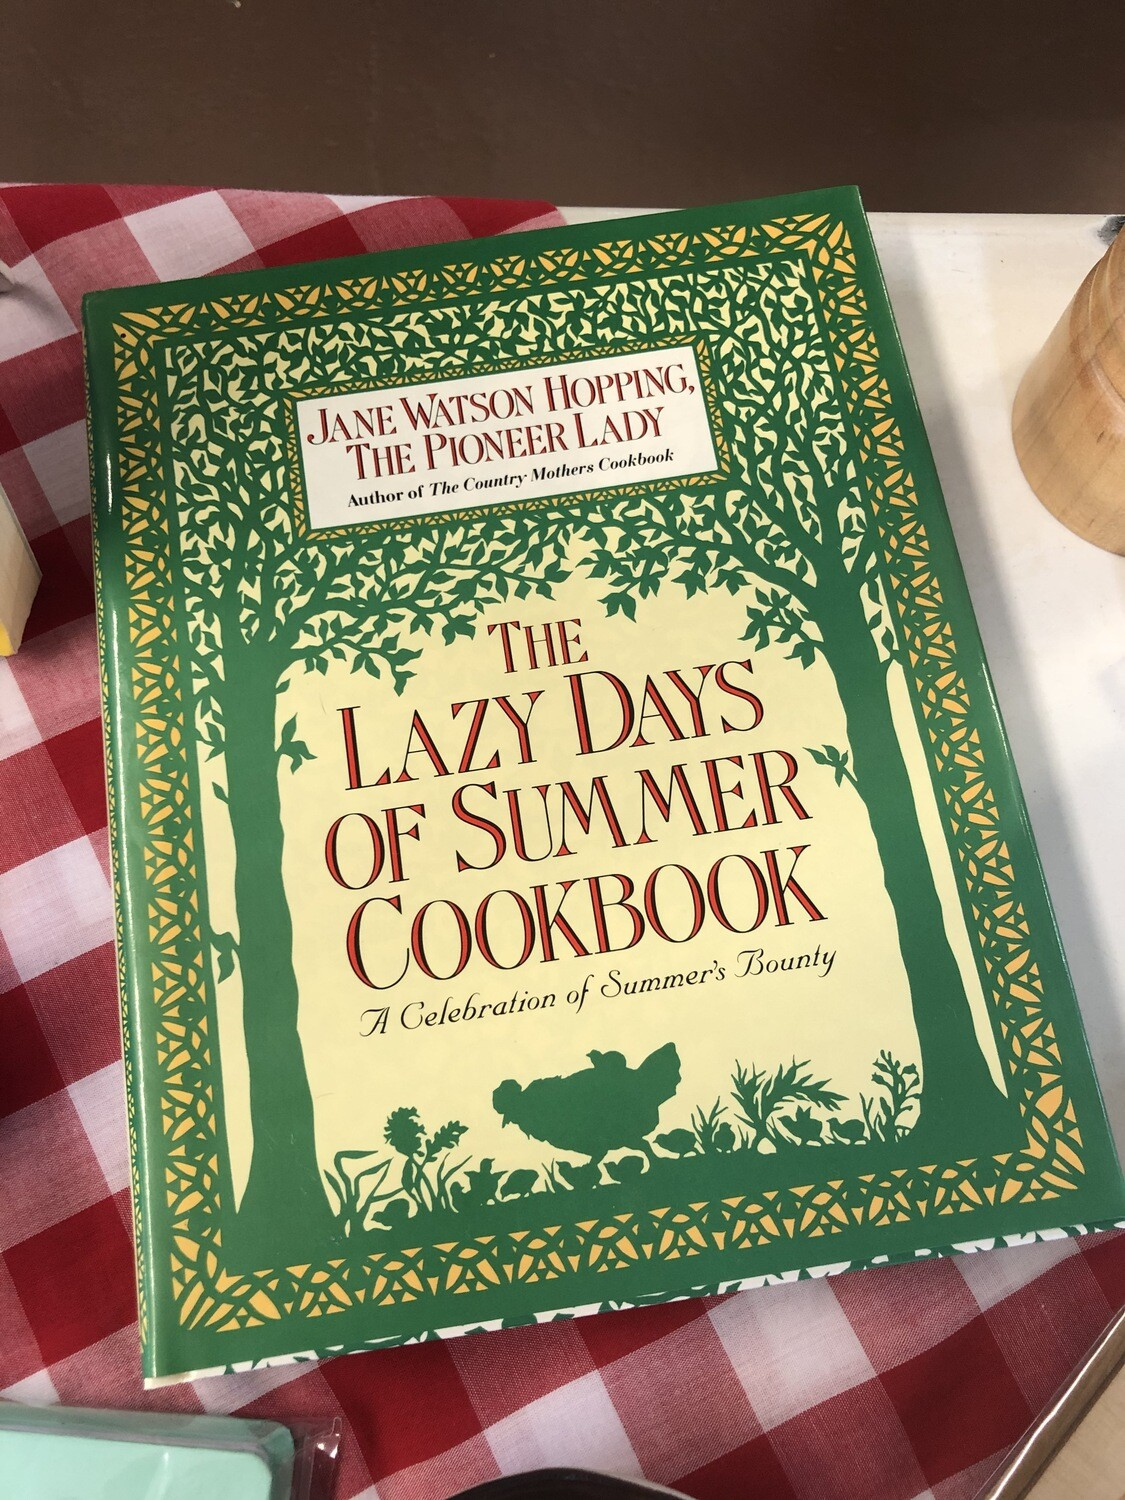 The Lazy Days of Summer Cookbook